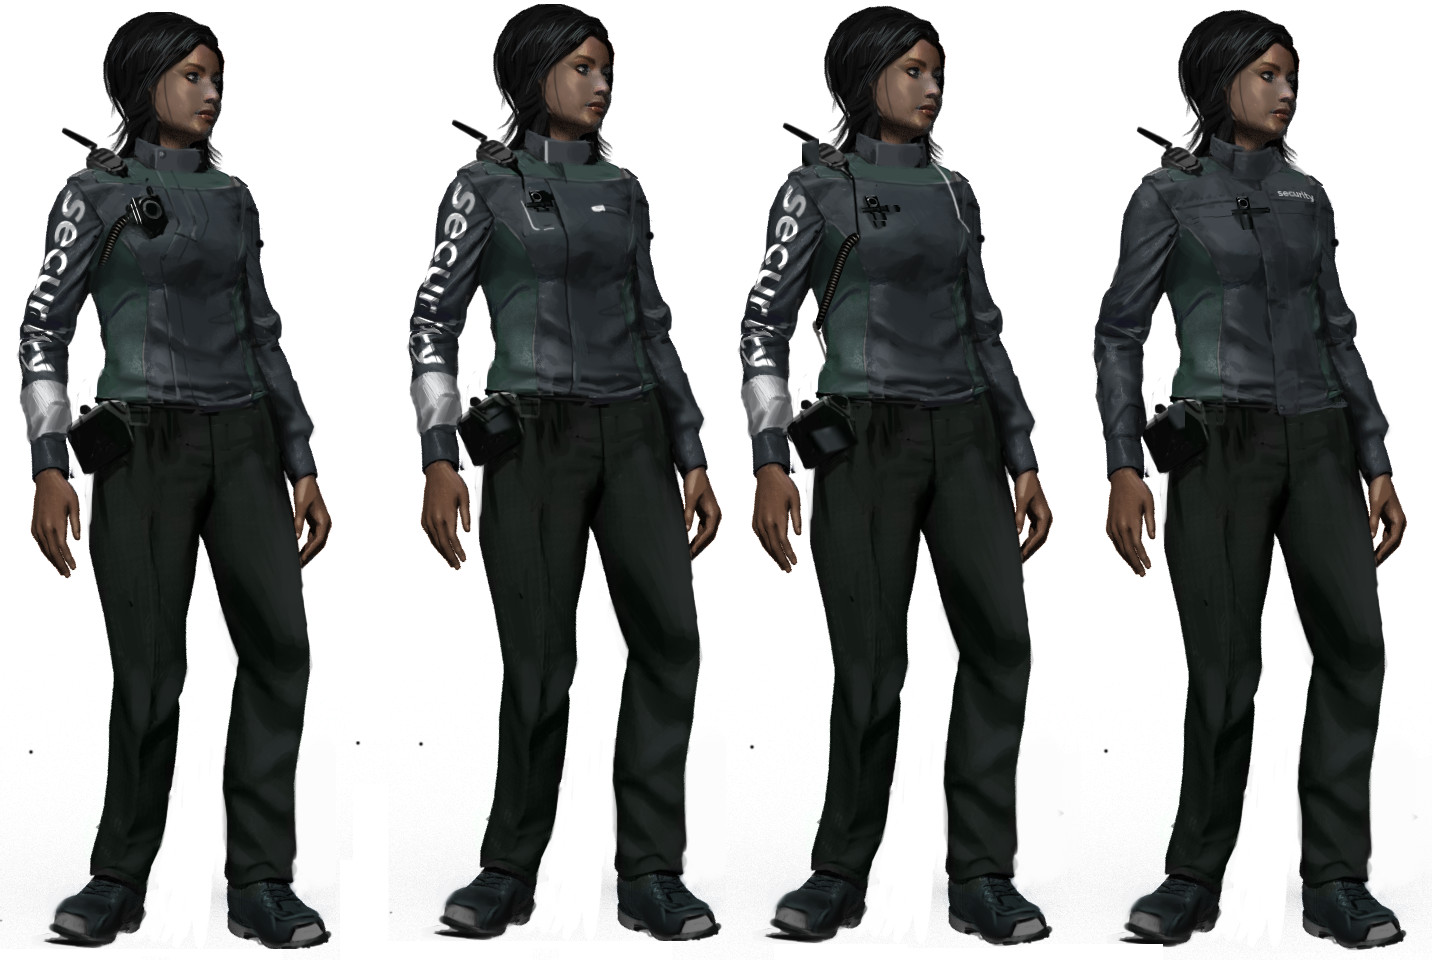 Security Guard costume variants